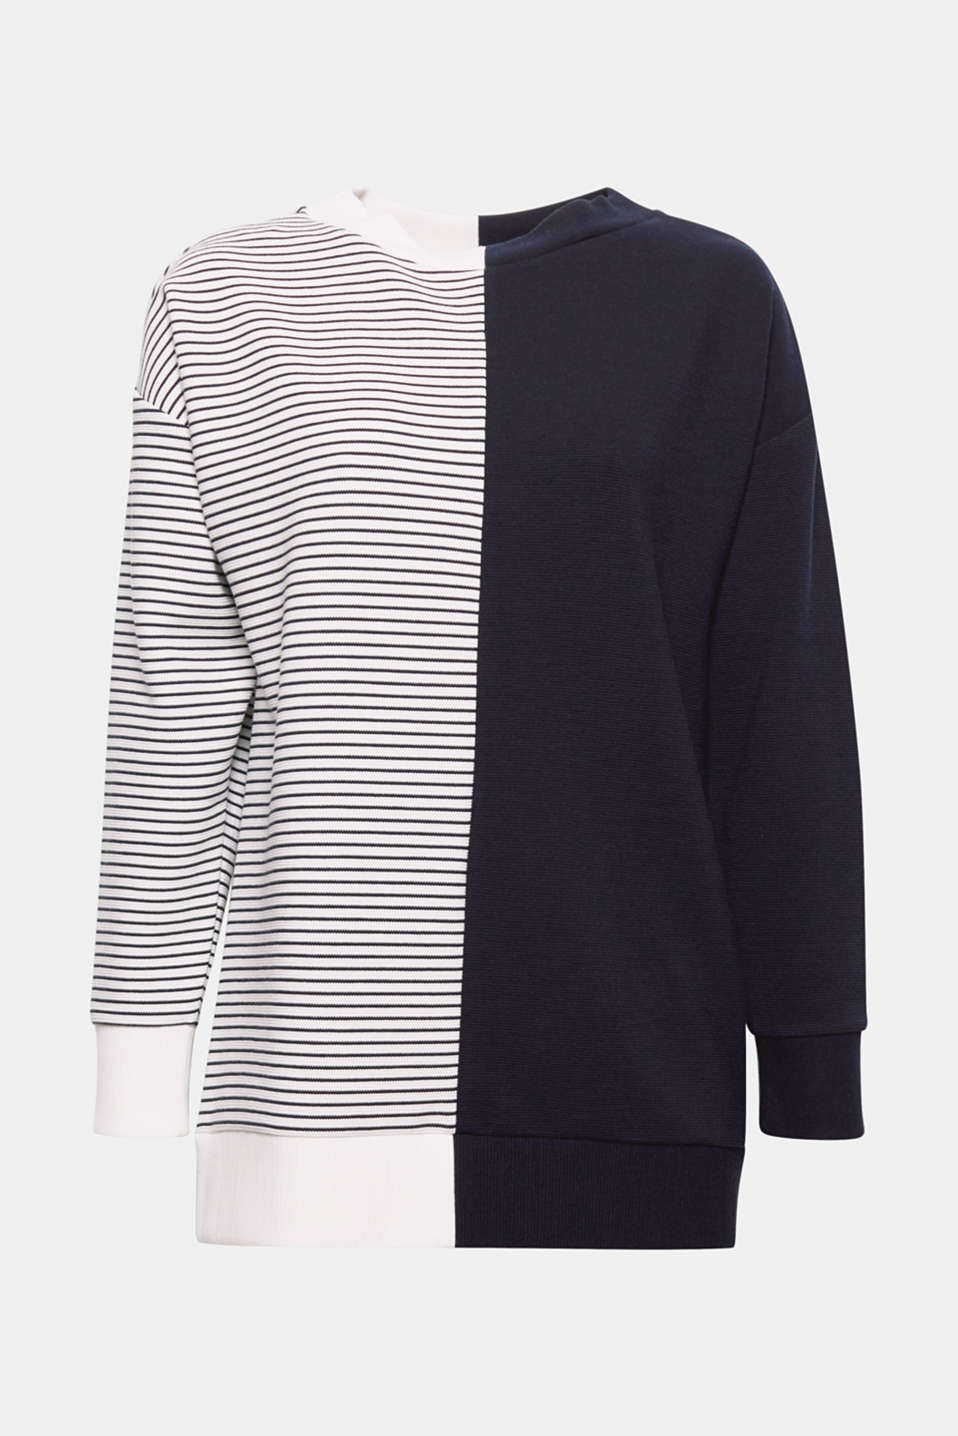 This ribbed sweatshirt is a fashion piece thanks to the original block look with one side plain and one side with stripes.